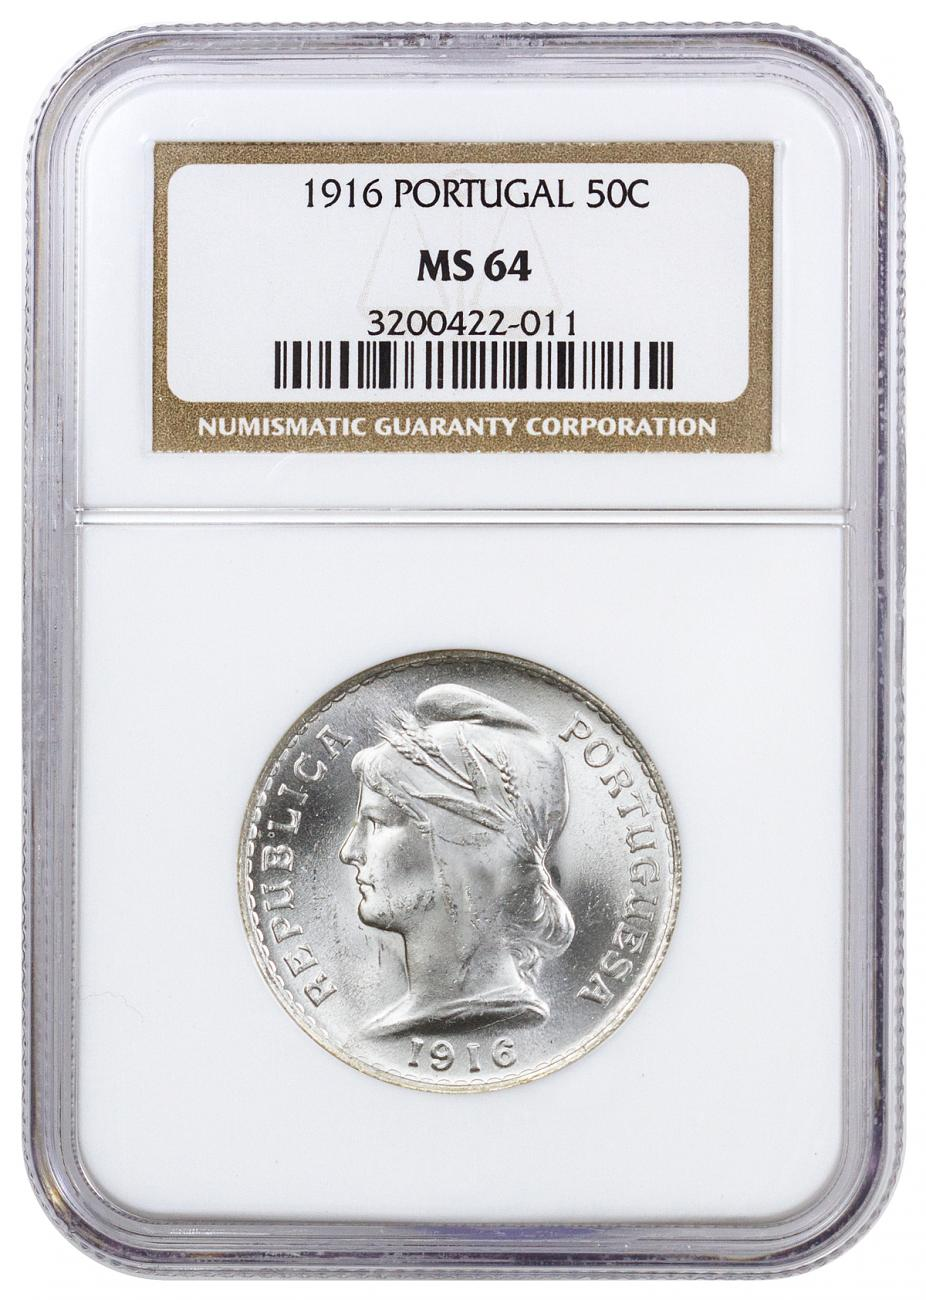 1916 Portugal Silver 50 Centavos NGC MS64